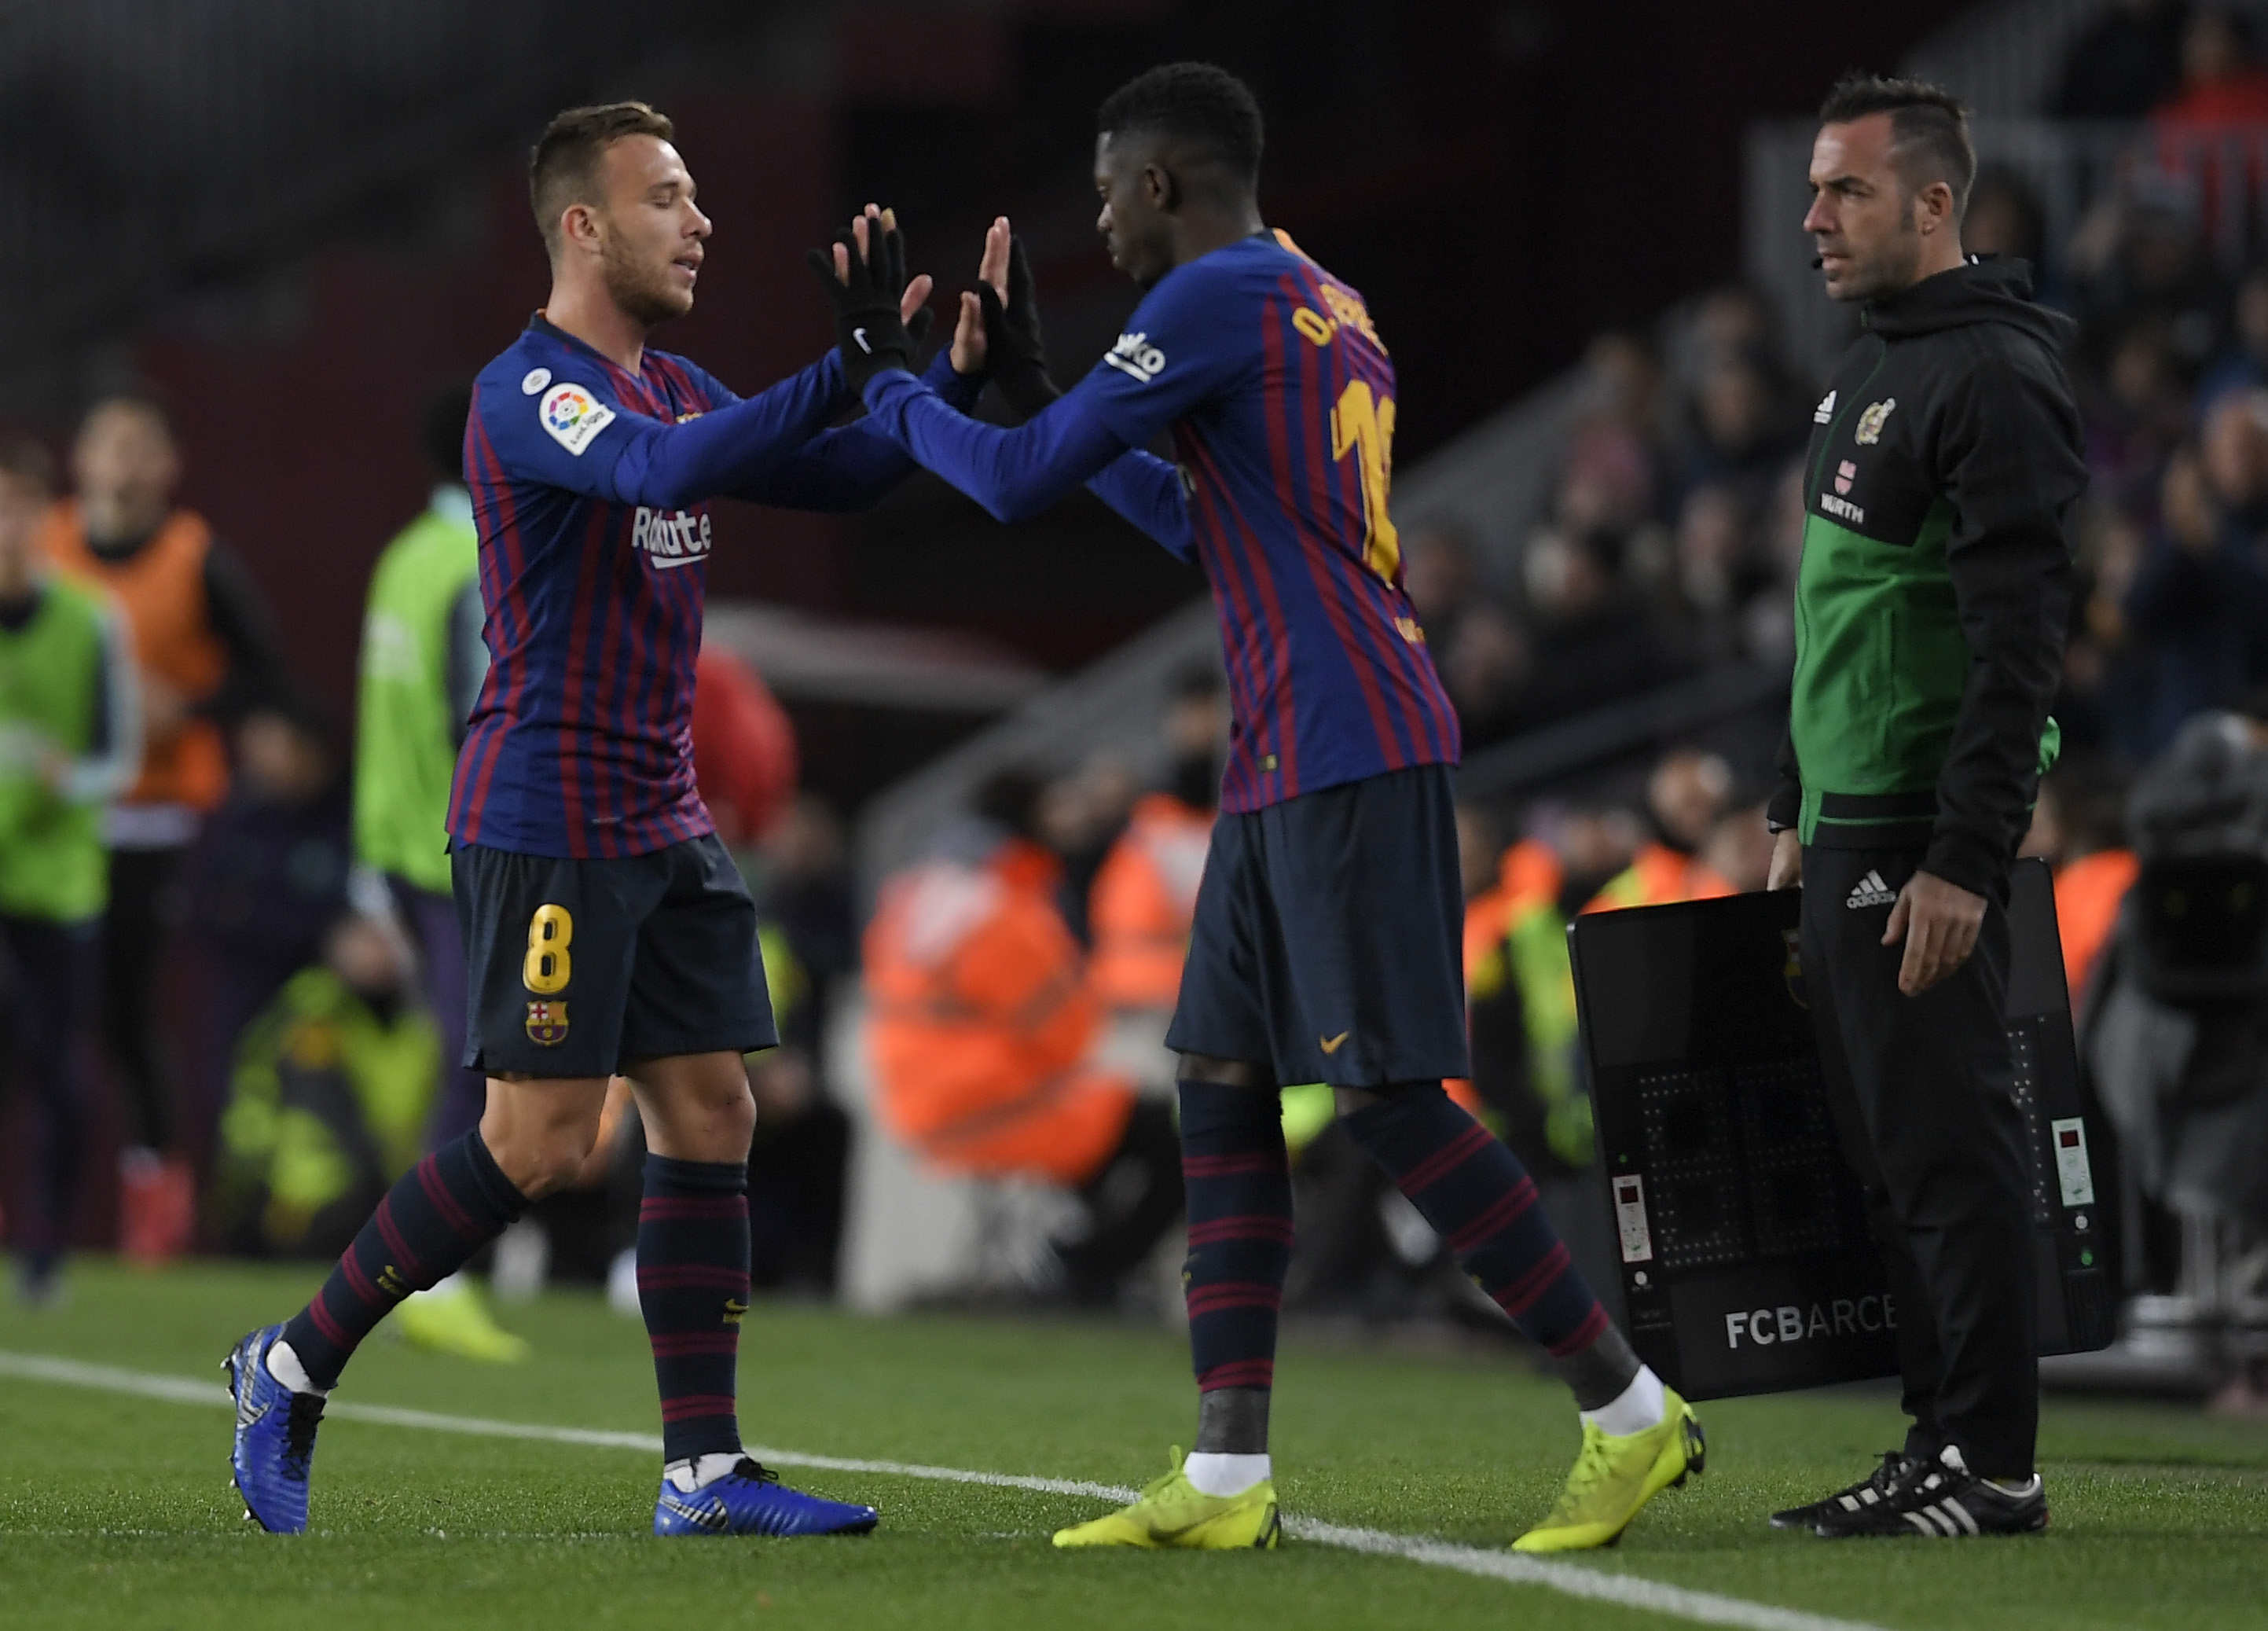 Arthur and Dembele are ruled out for Barcelona (Photo by LLUIS GENE/AFP via Getty Images)